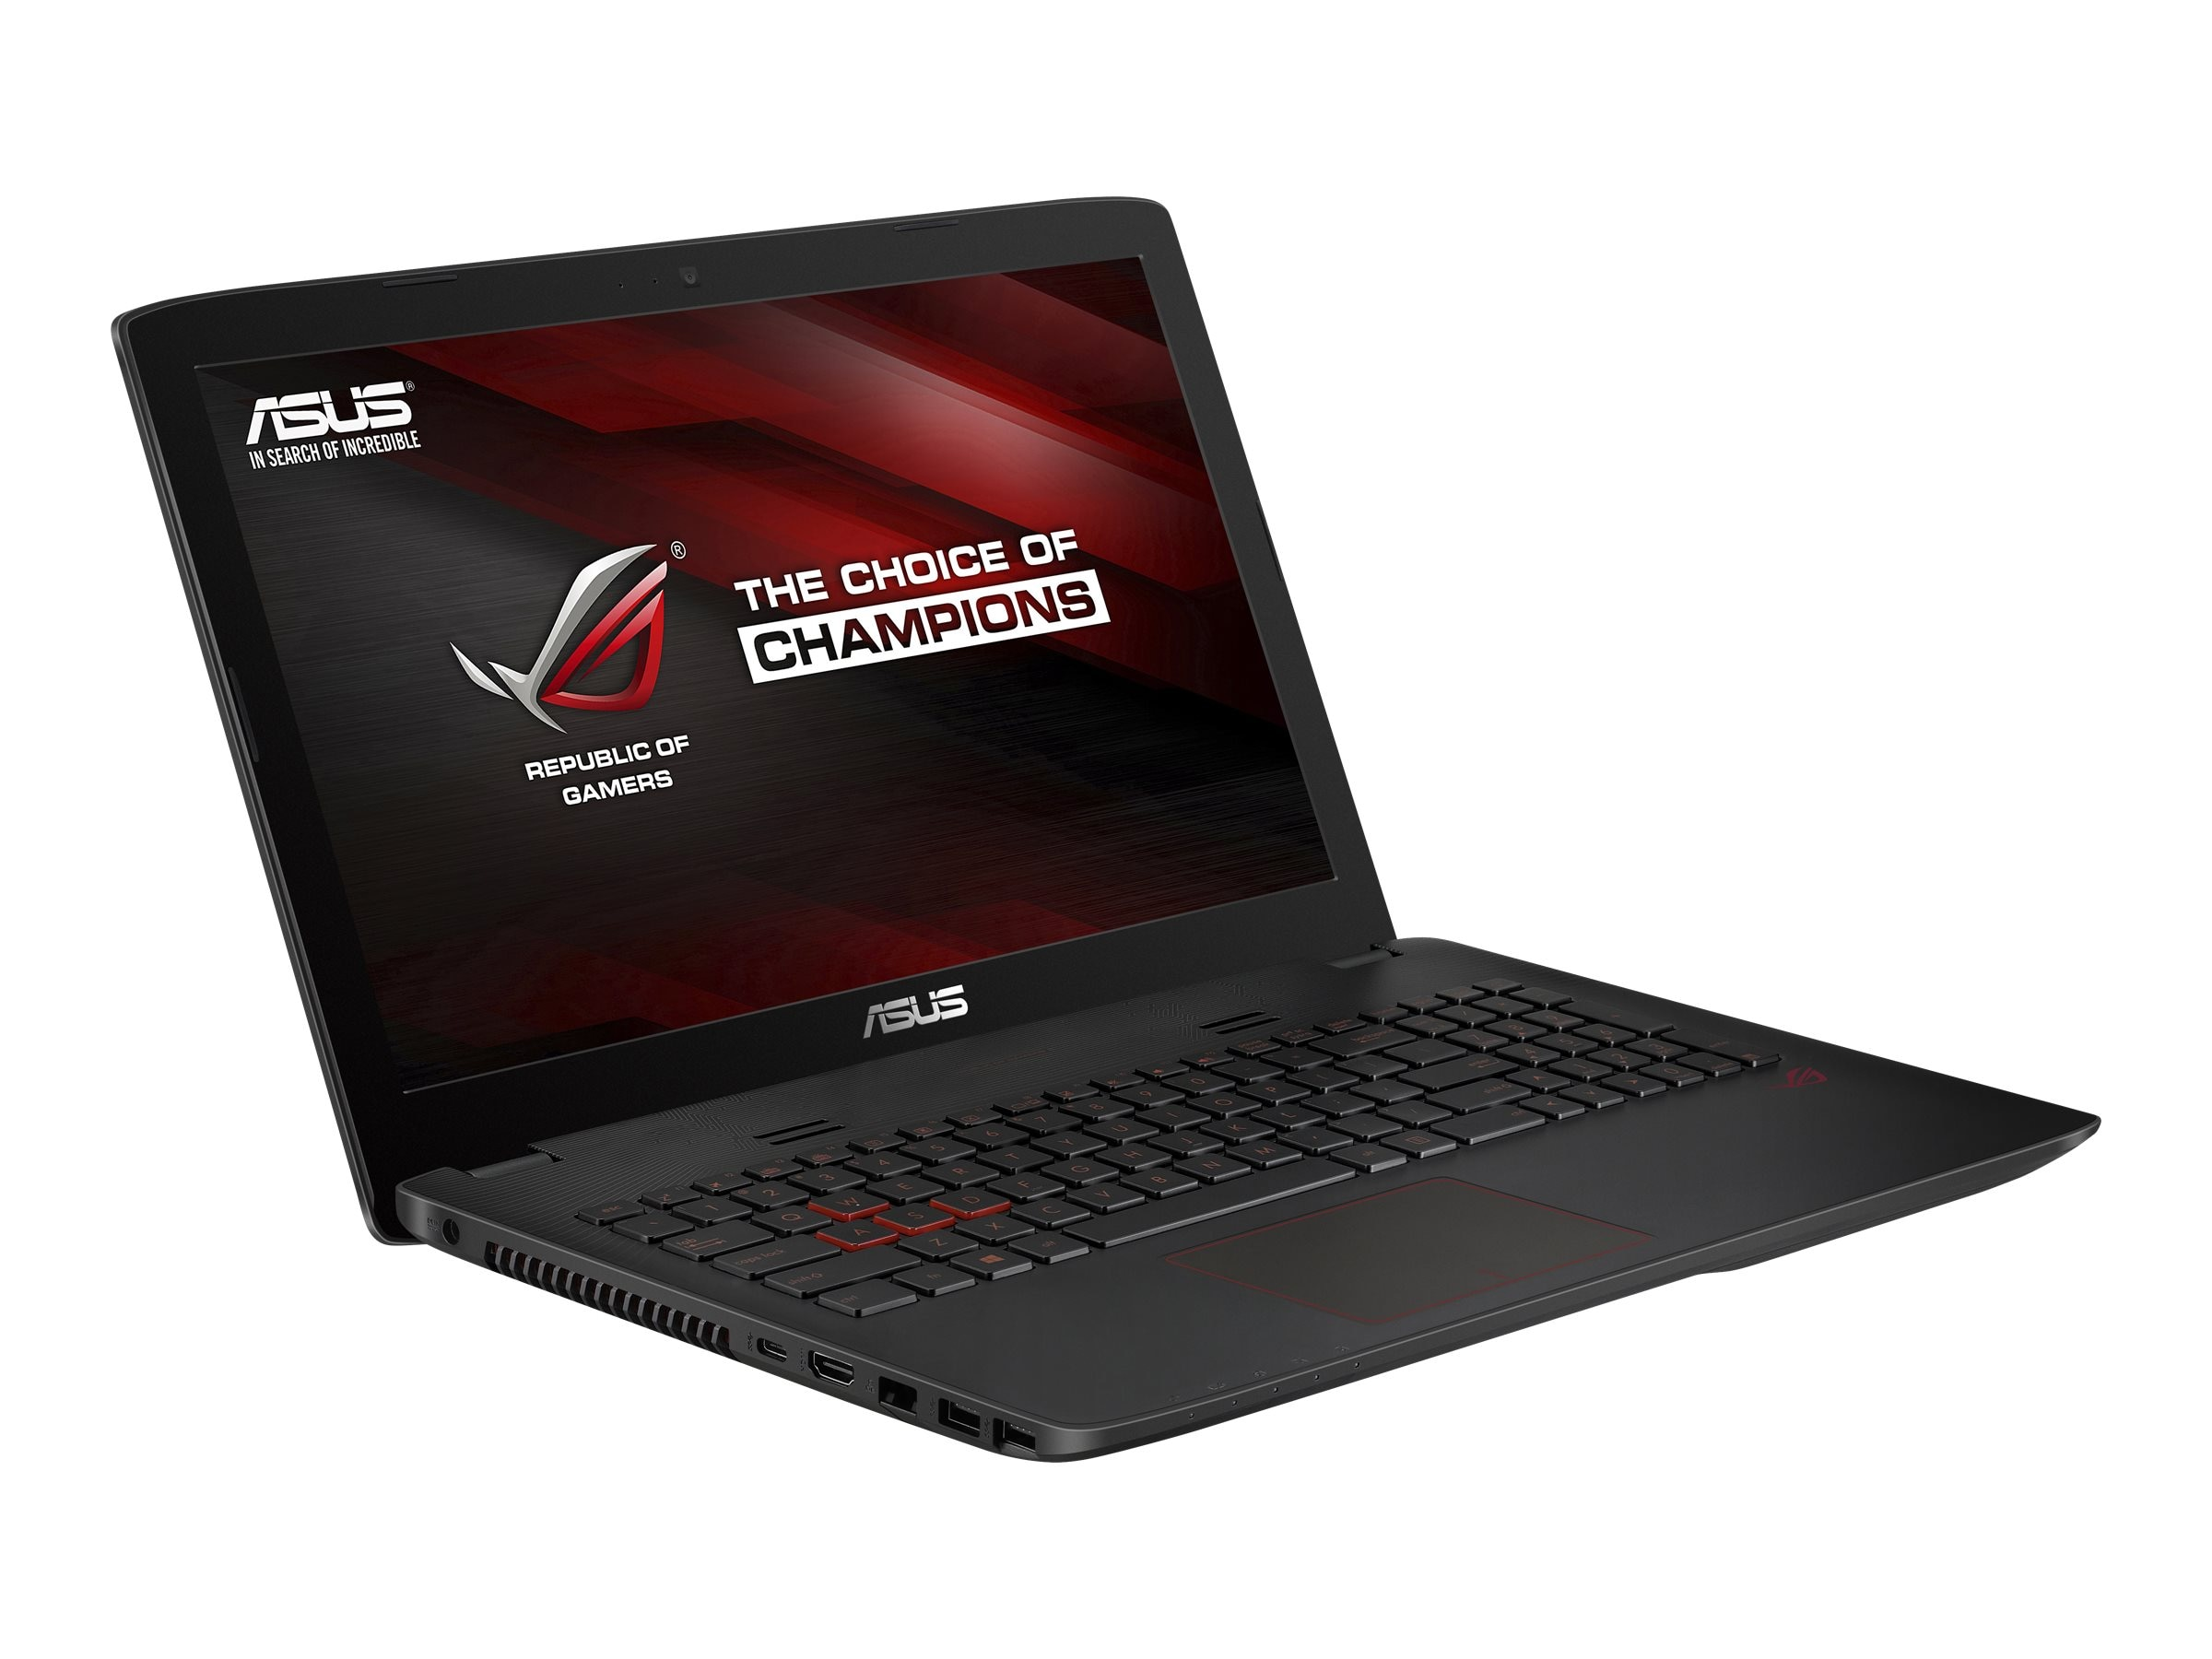 Asus GL552VW-DH71 15.6 Notebook PC, GL552VW-DH71